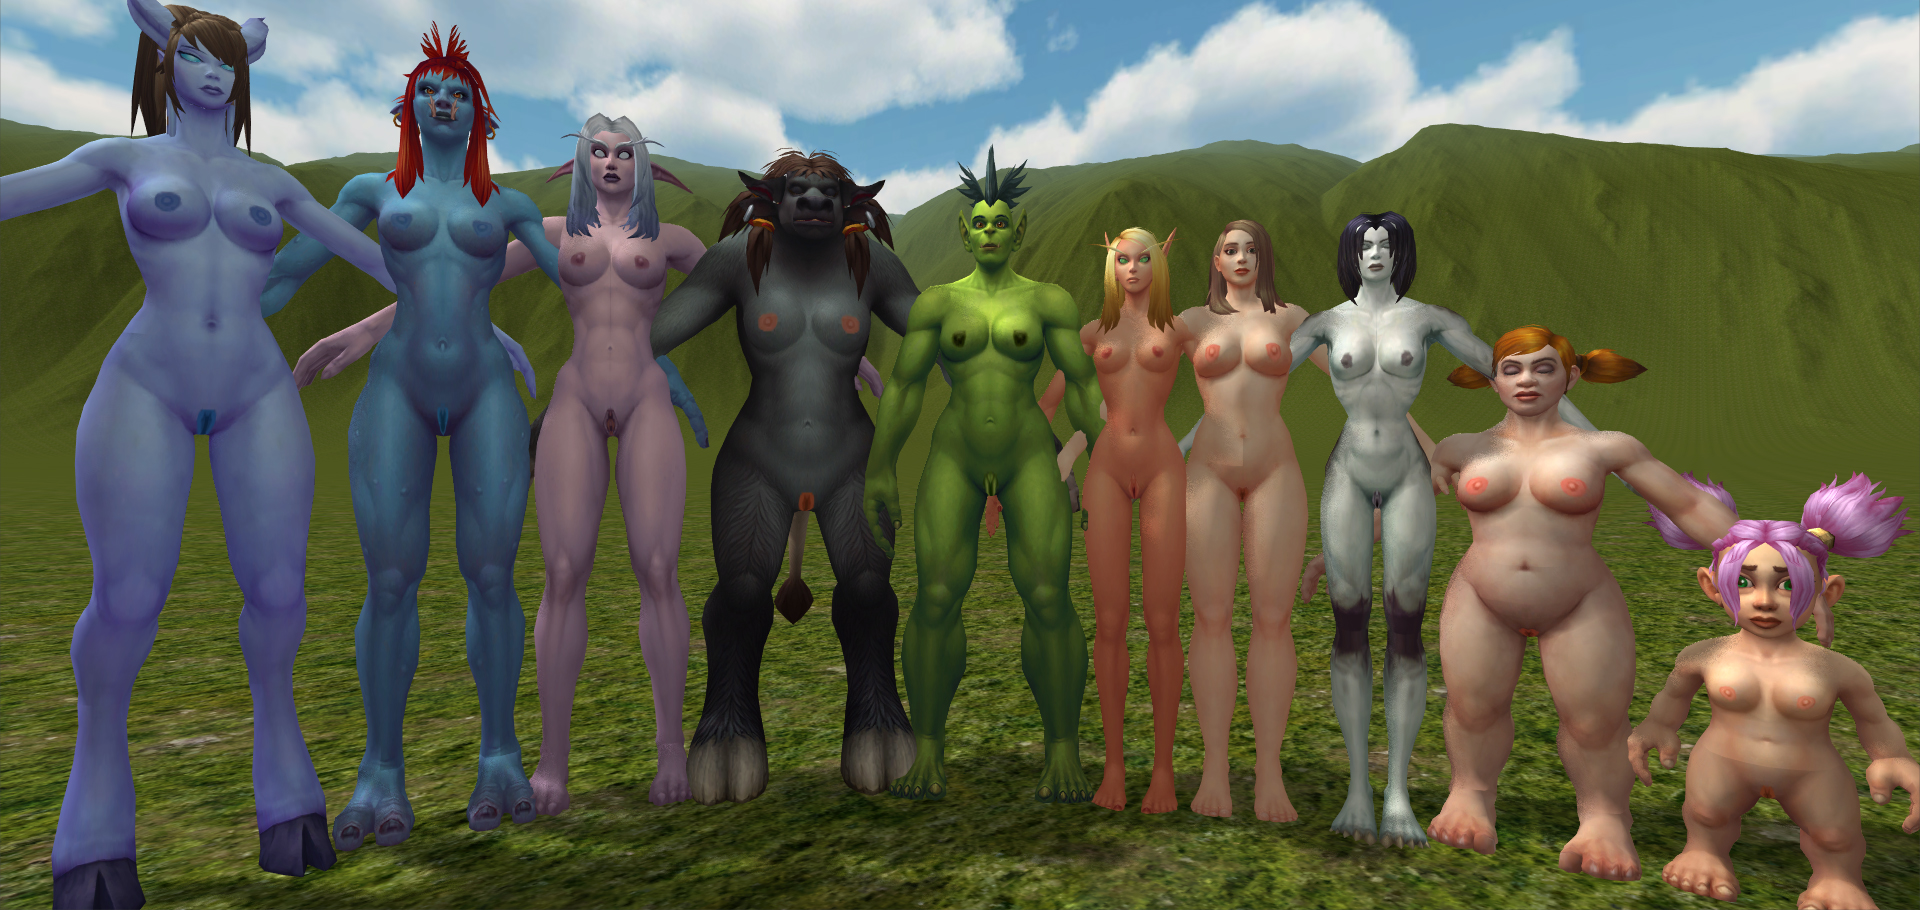 Naked world if warcraft pron scenes